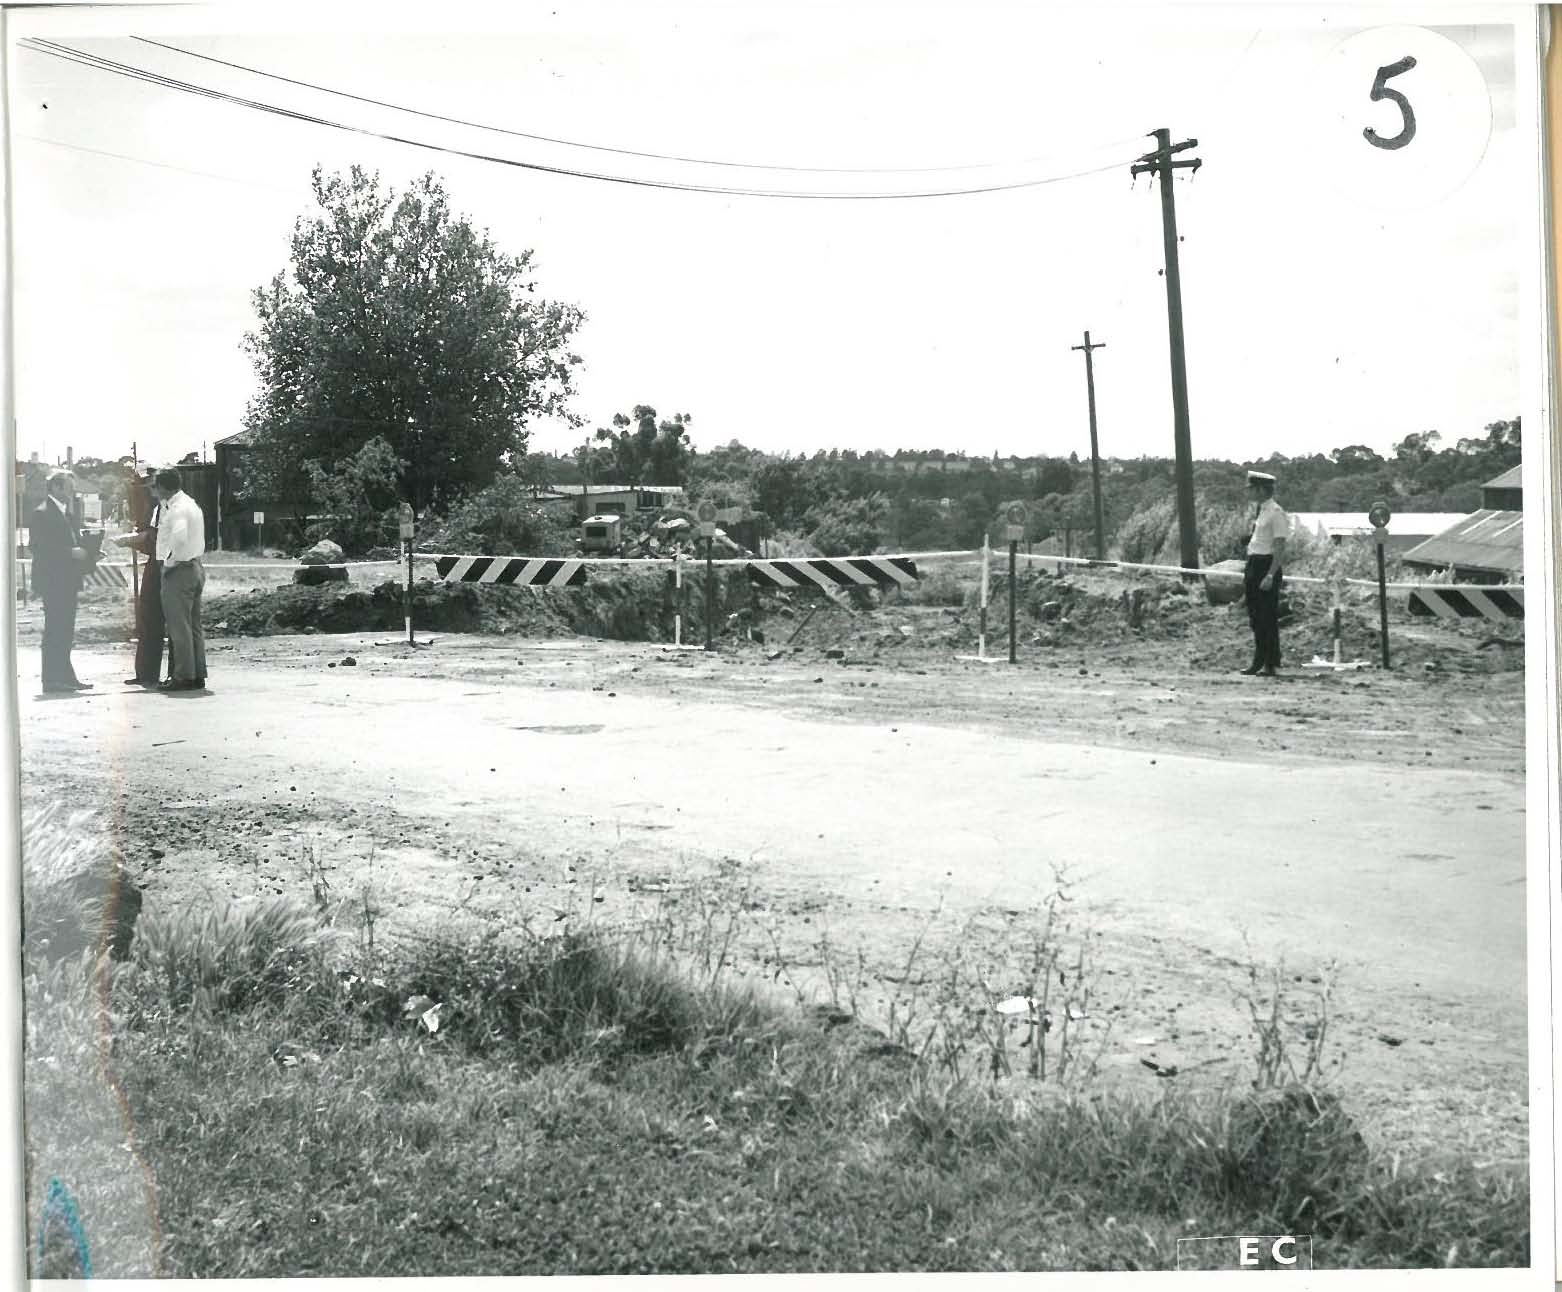 black and white photo of police standing on a dirt road